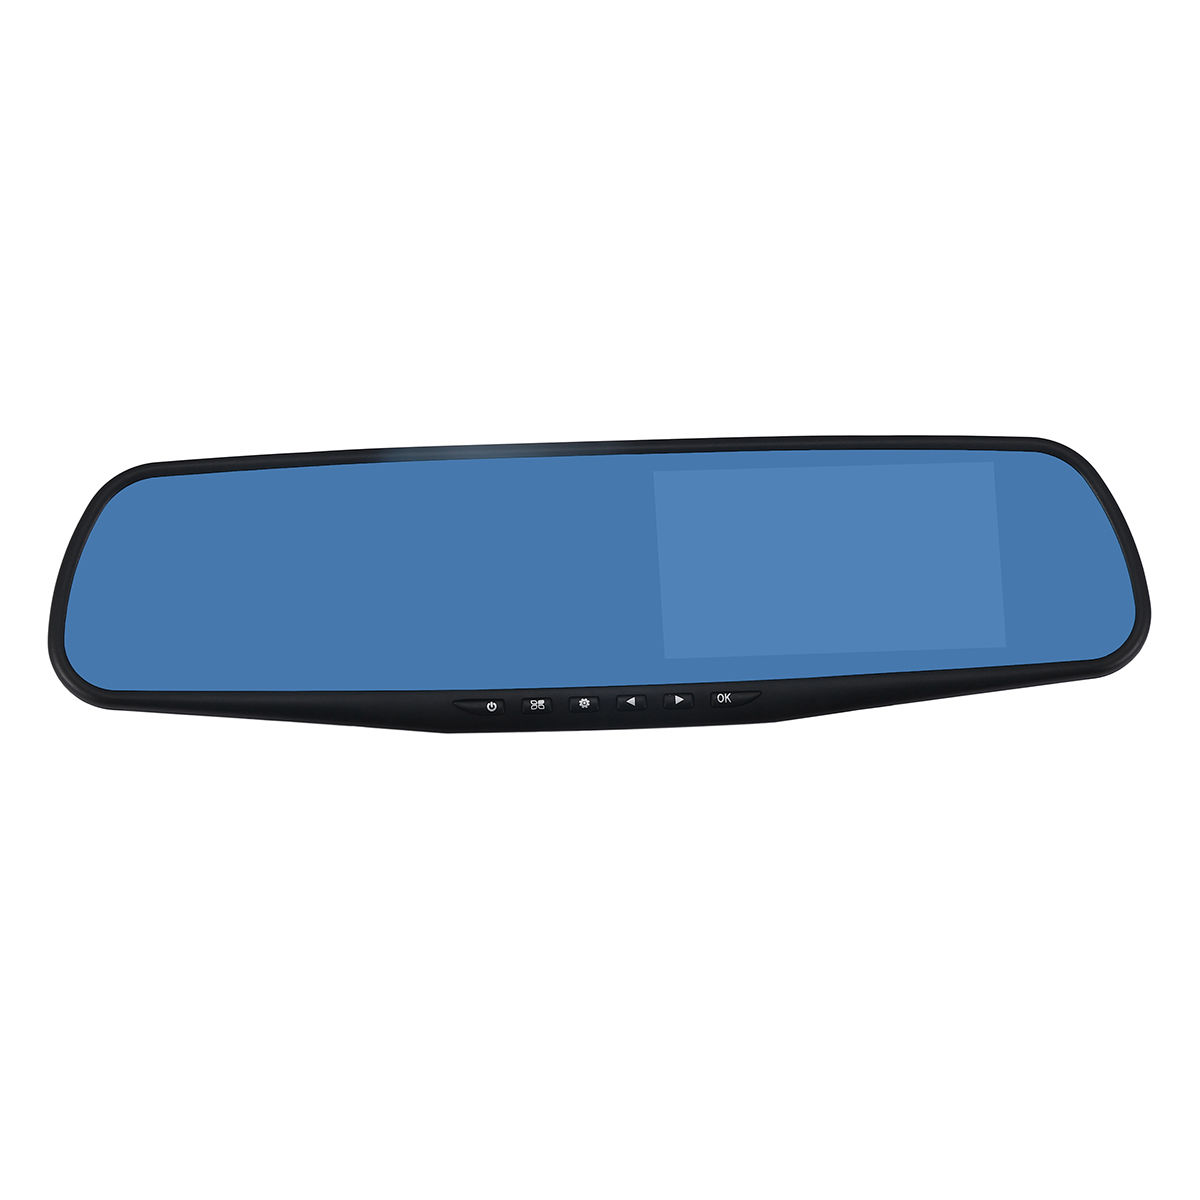 USB 2.0 Car DVR 2.4 Inch Built-in Camera Replacement Night Vision Set Rear View Mirror Parts Accessories